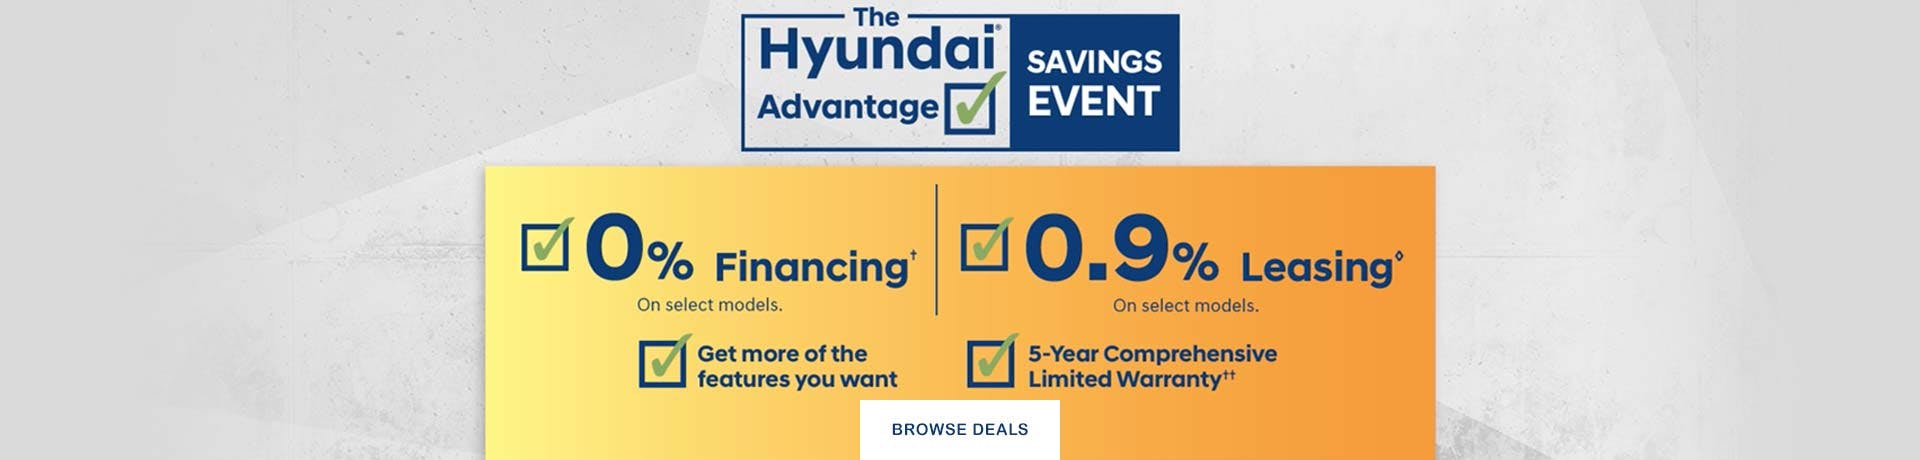 Hyundai Advantage Sales event